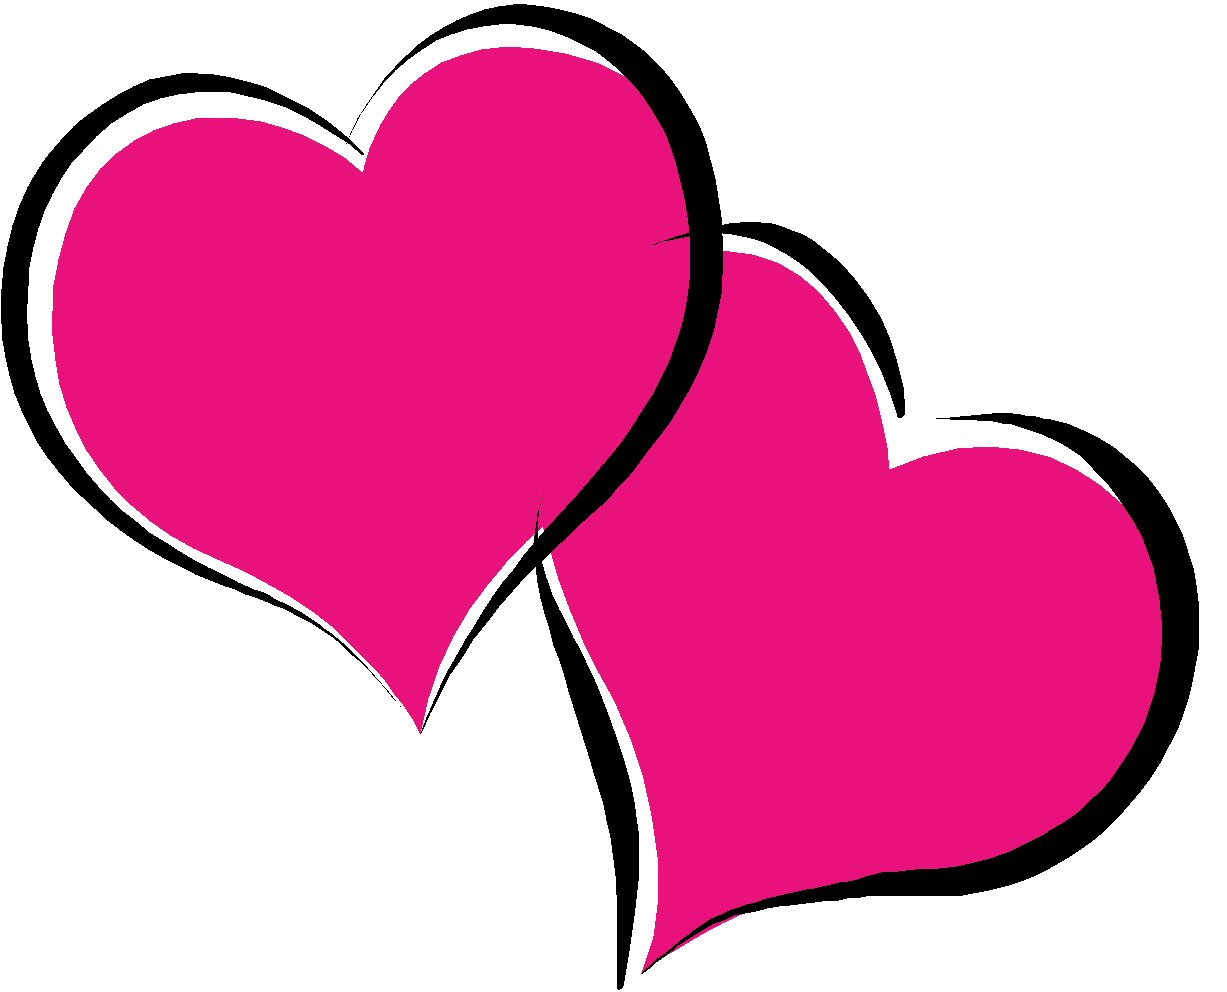 valentine card clipart at getdrawings com free for personal use rh getdrawings com free valentines clip art for kids free valentines clip art for kids